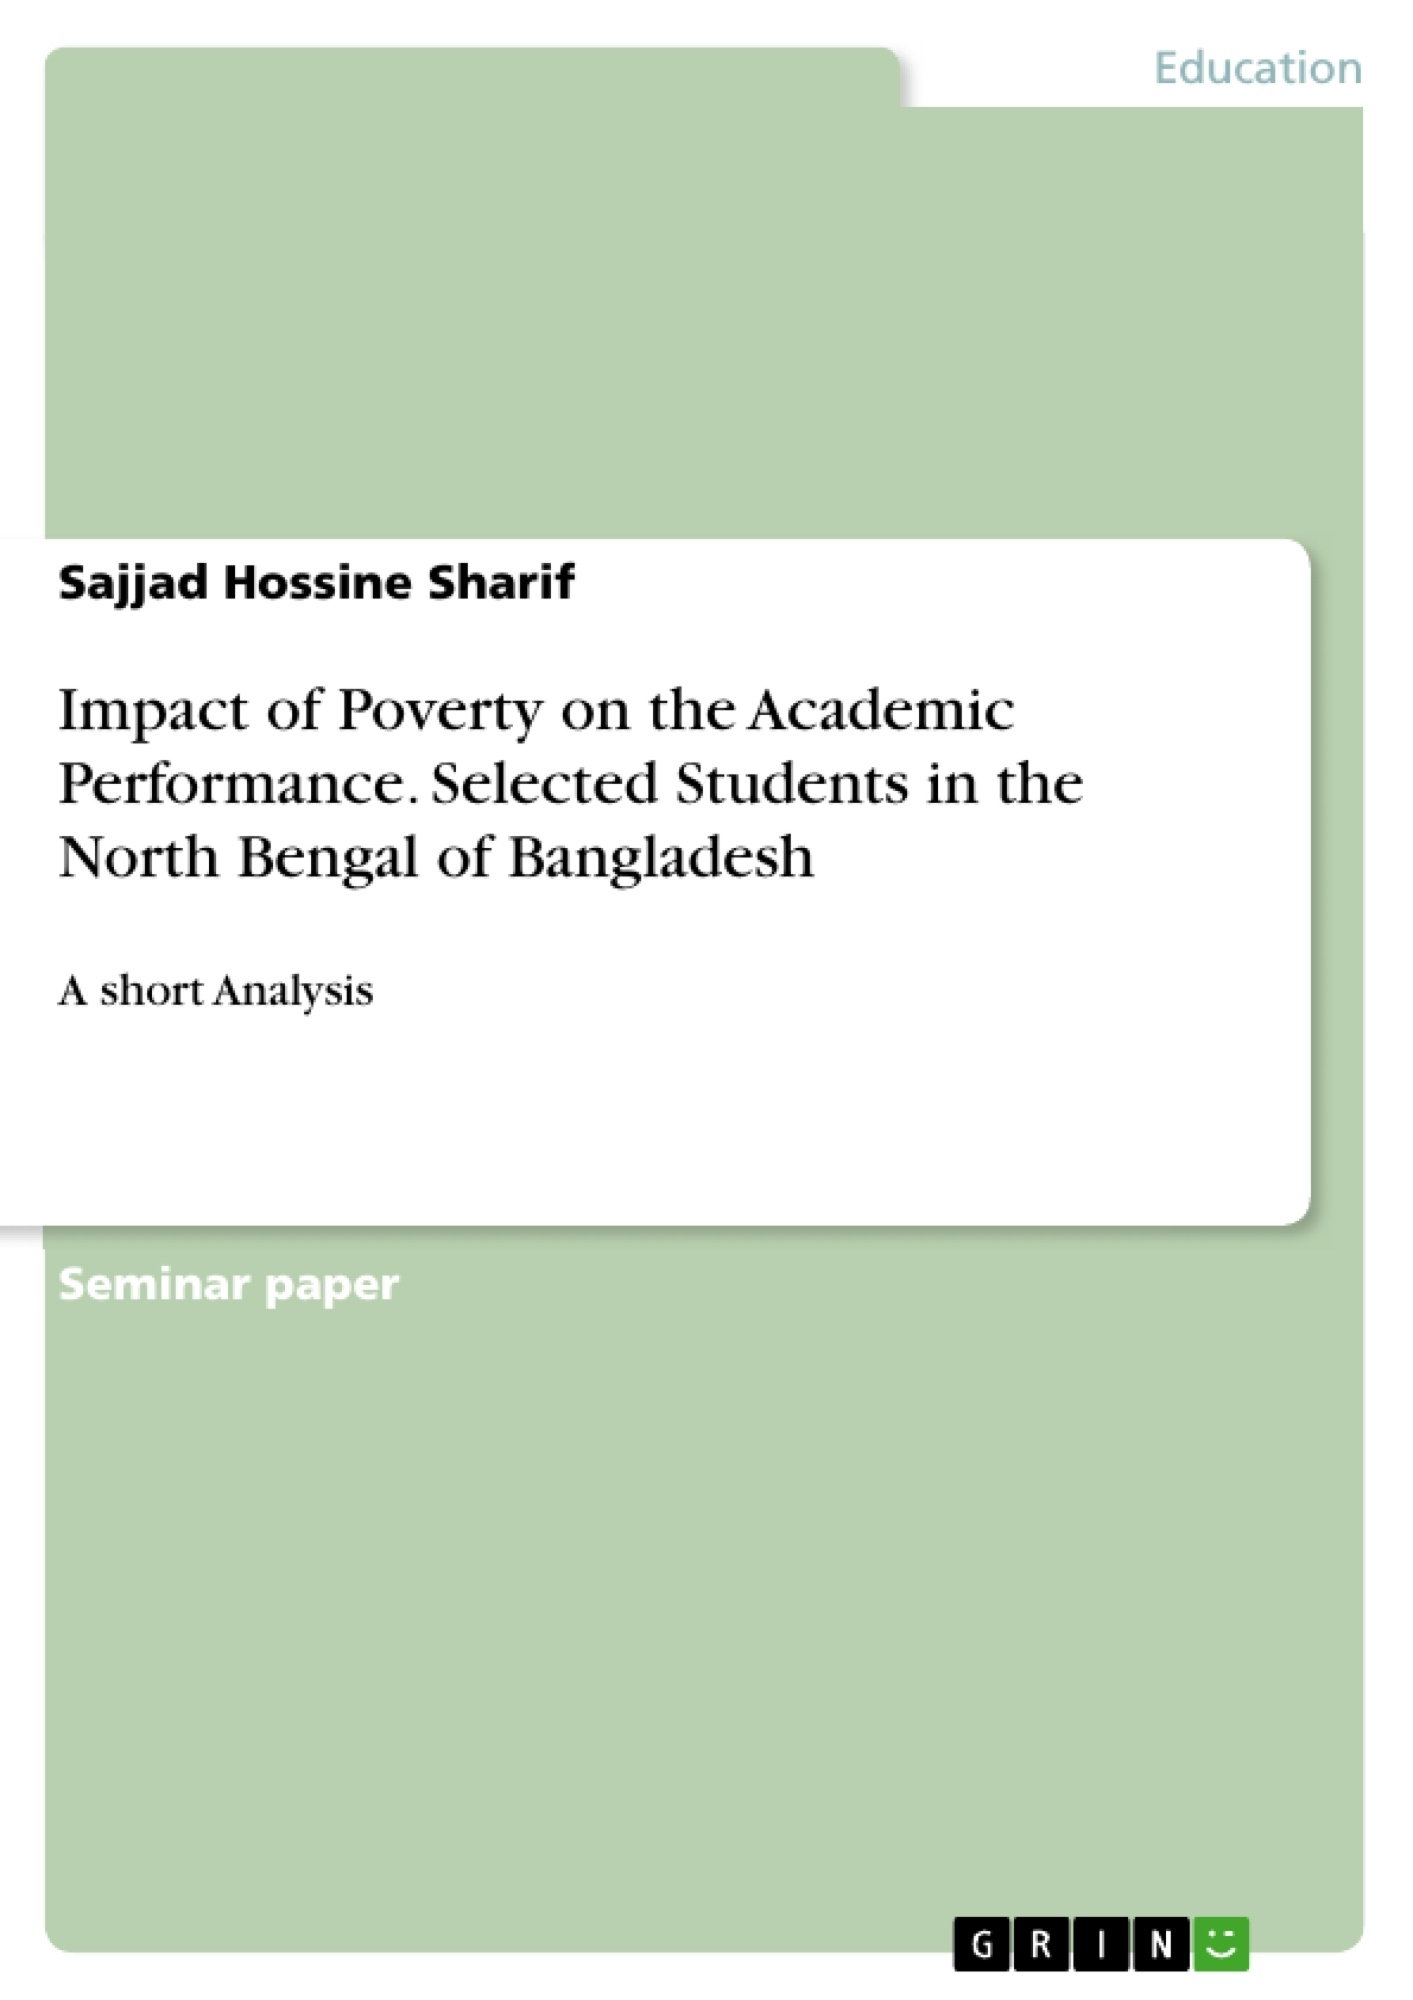 Title: Impact of Poverty on the Academic Performance. Selected Students in the North Bengal of Bangladesh